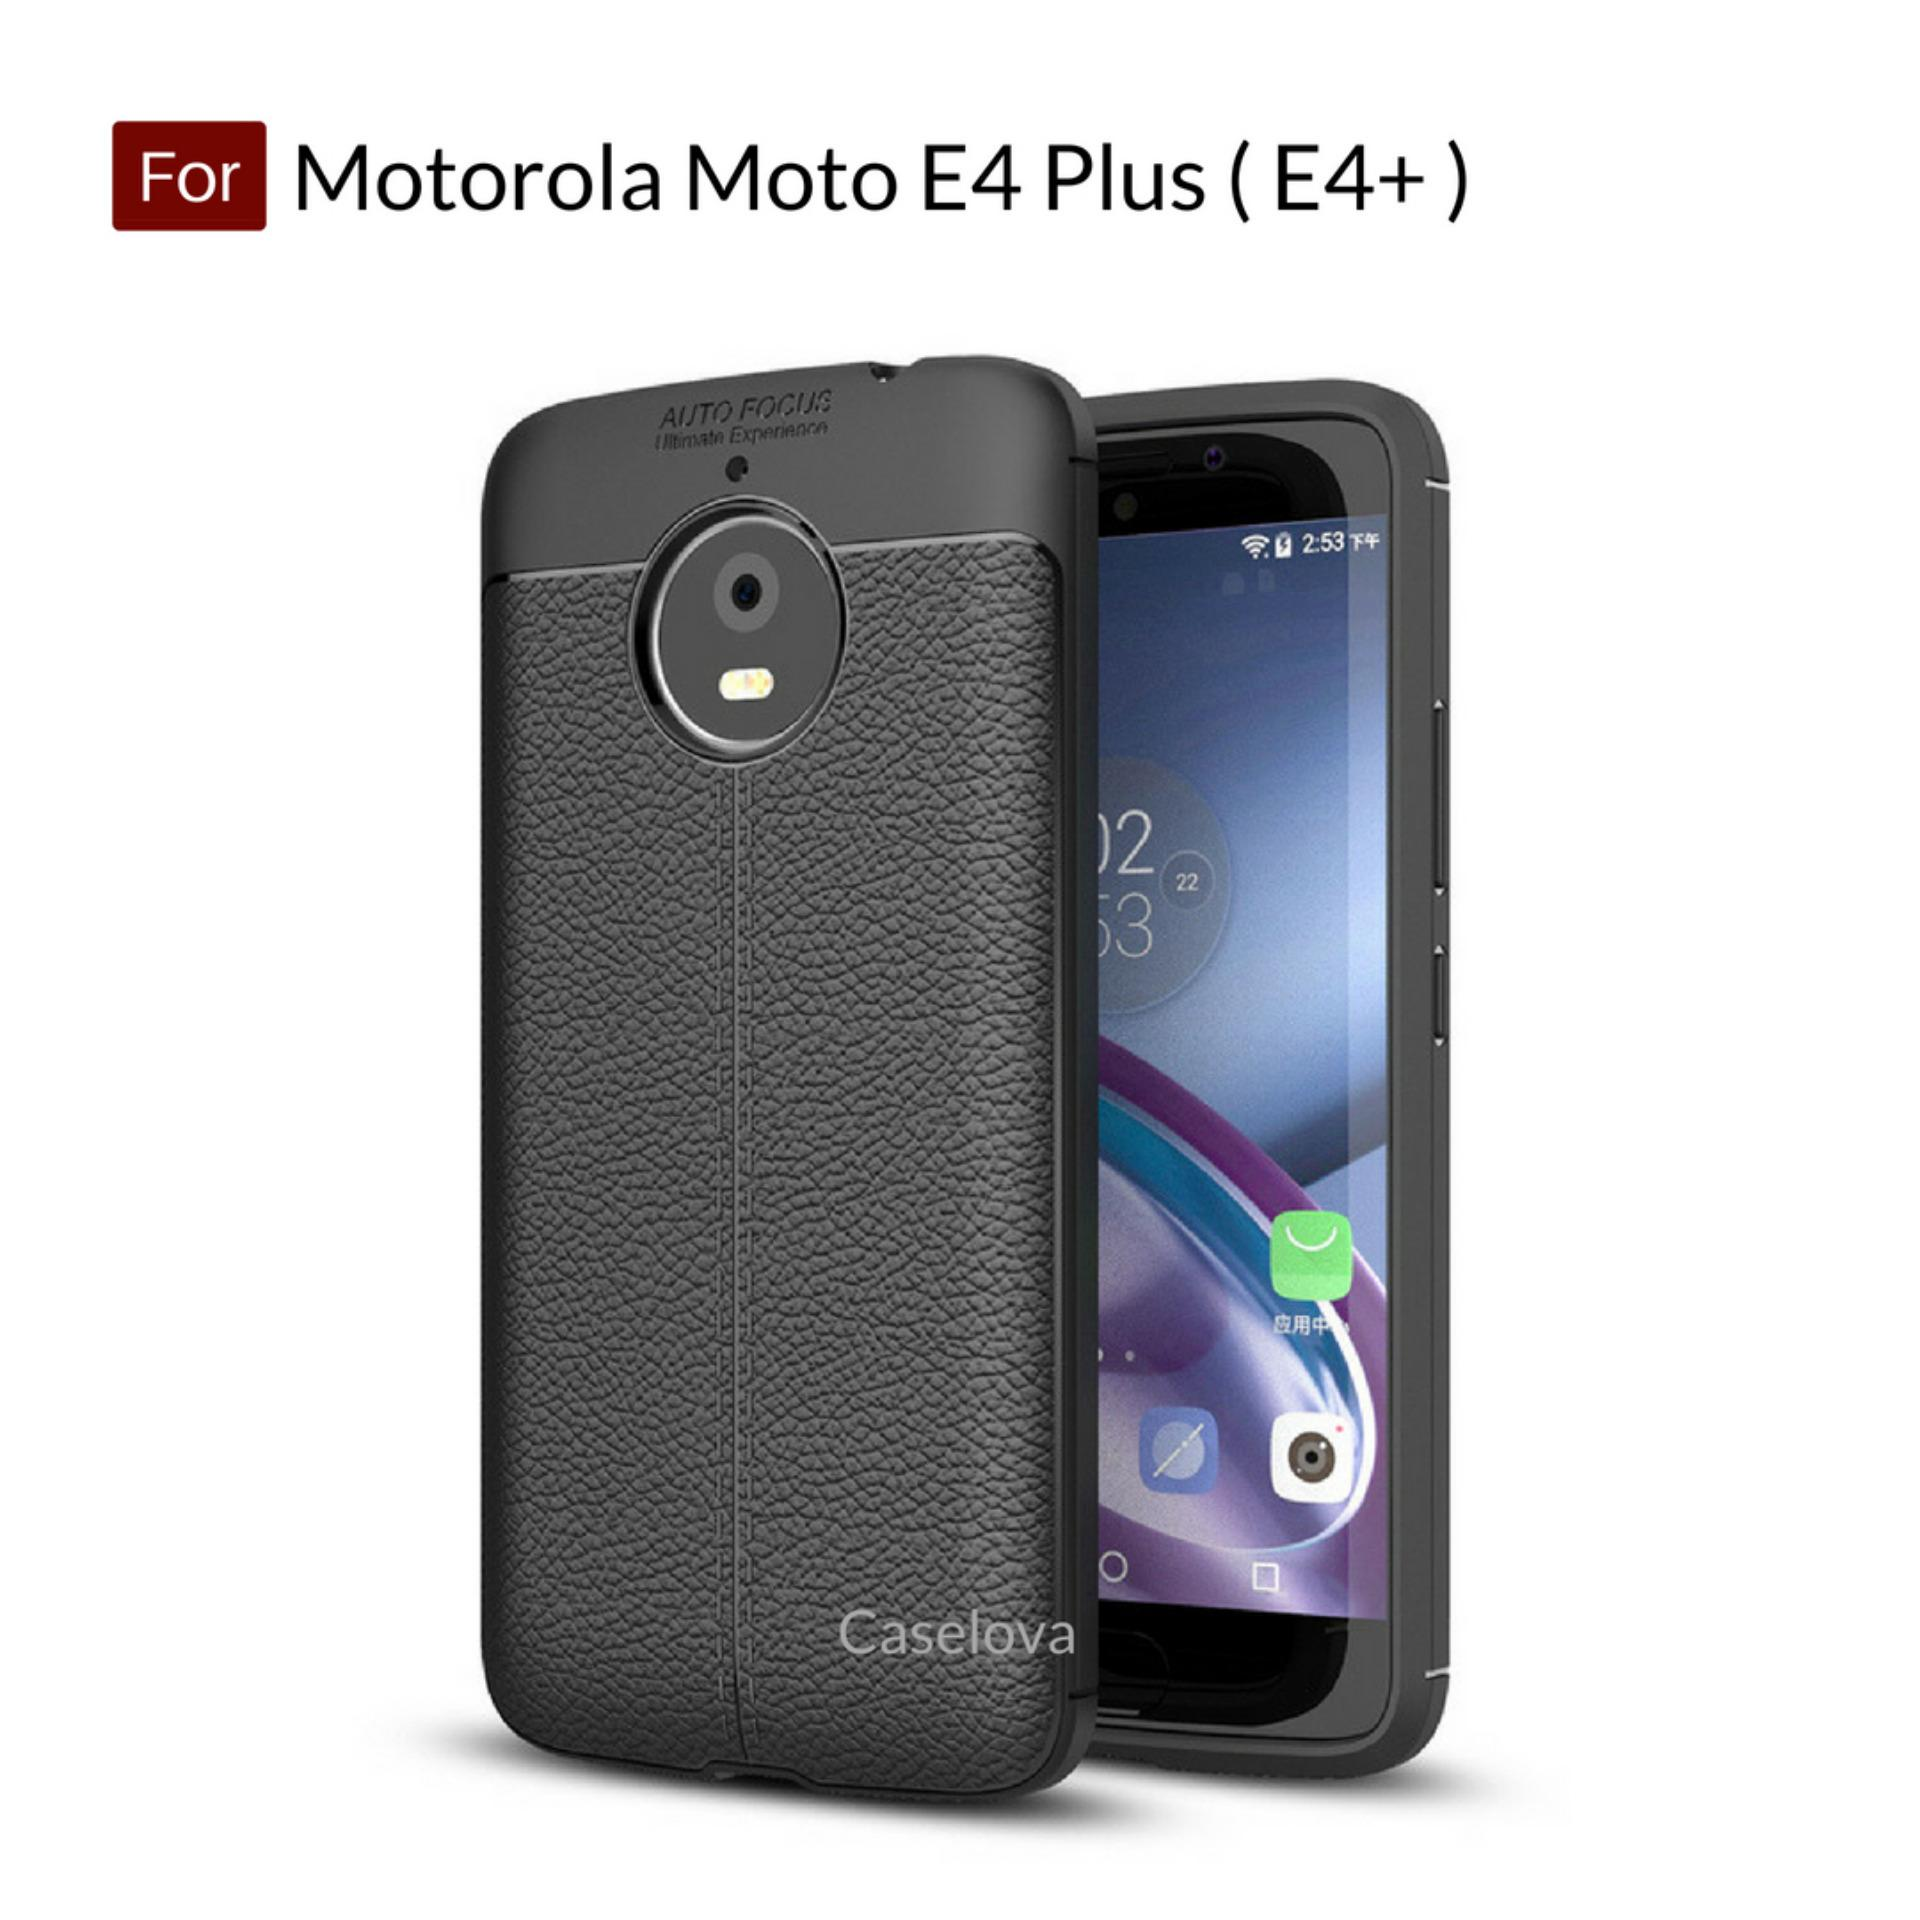 Caselova Ultimate Experience Shockproof Premium Quality Hybrid Case For Motorola Moto E4 Plus ( E4+ ) - Black